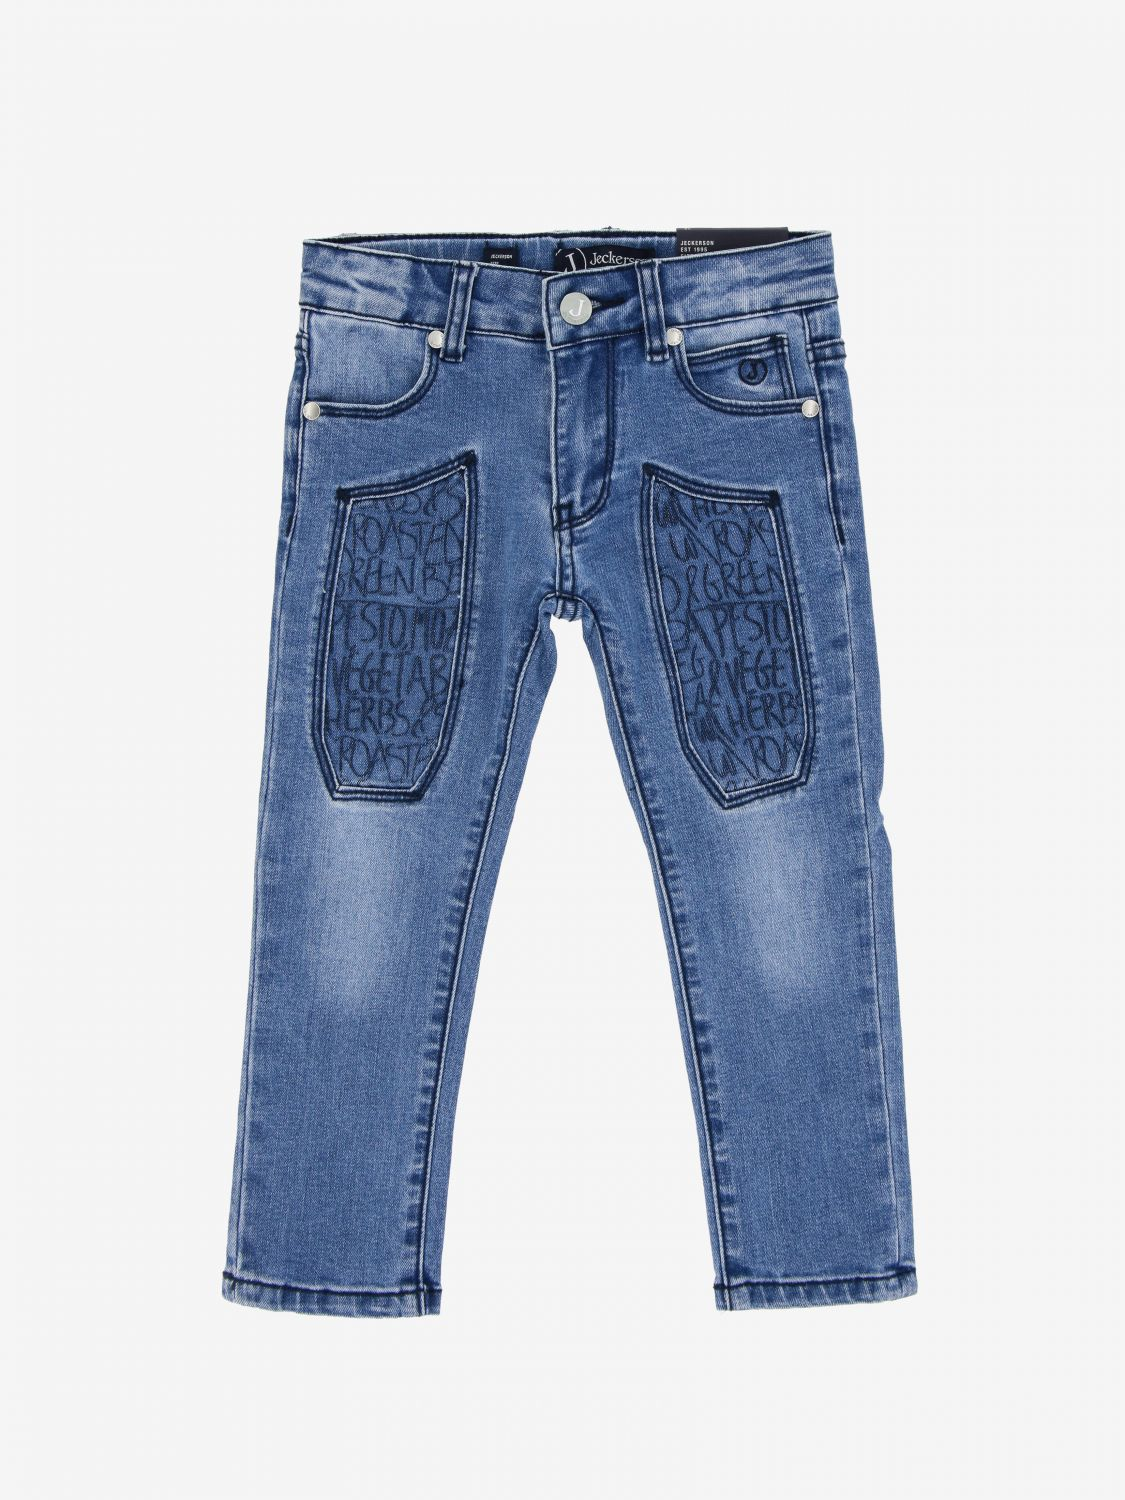 Jeckerson denim jeans with patterned patches stone washed 1